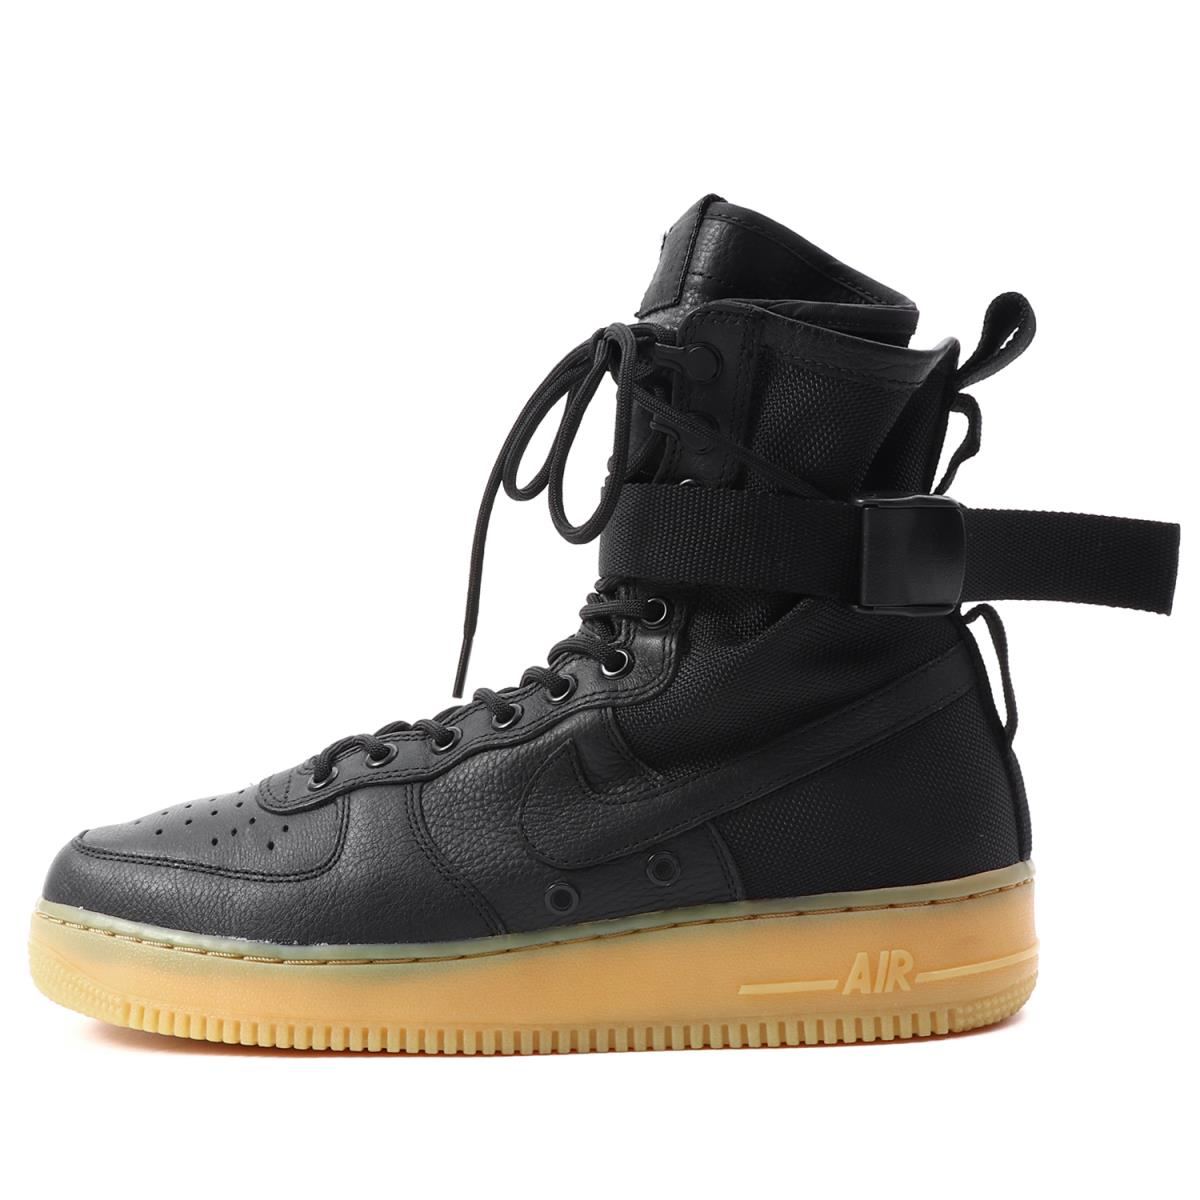 NIKE (ナイキ) SPECIAL FIELD AIR FORCE 1 (859202-009) ブラック×ガムライト US10(28cm) 【新品同様】【K1935】【中古】【あす楽☆対応可】